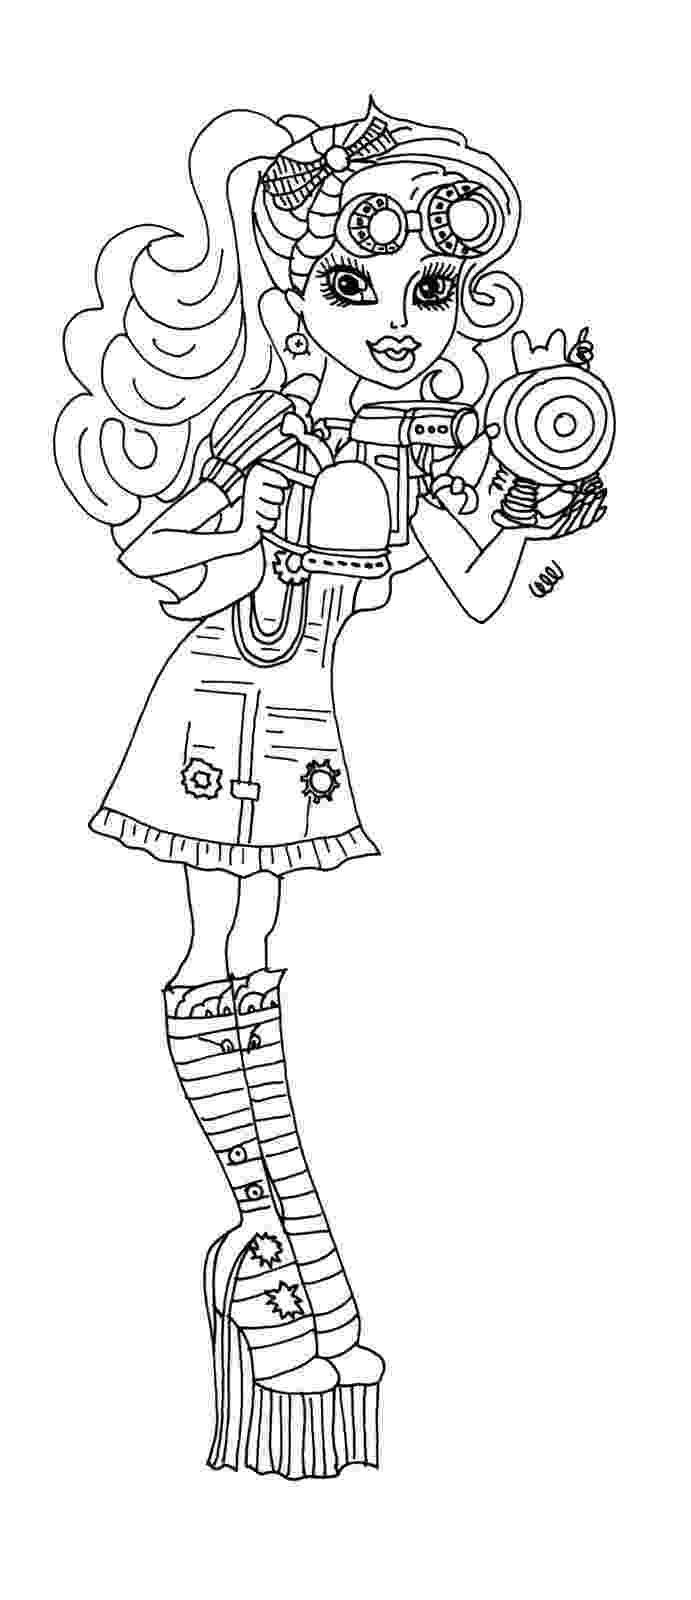 monster high coloring pages robecca steam monster high robecca steam hold head coloring page pages coloring high monster steam robecca